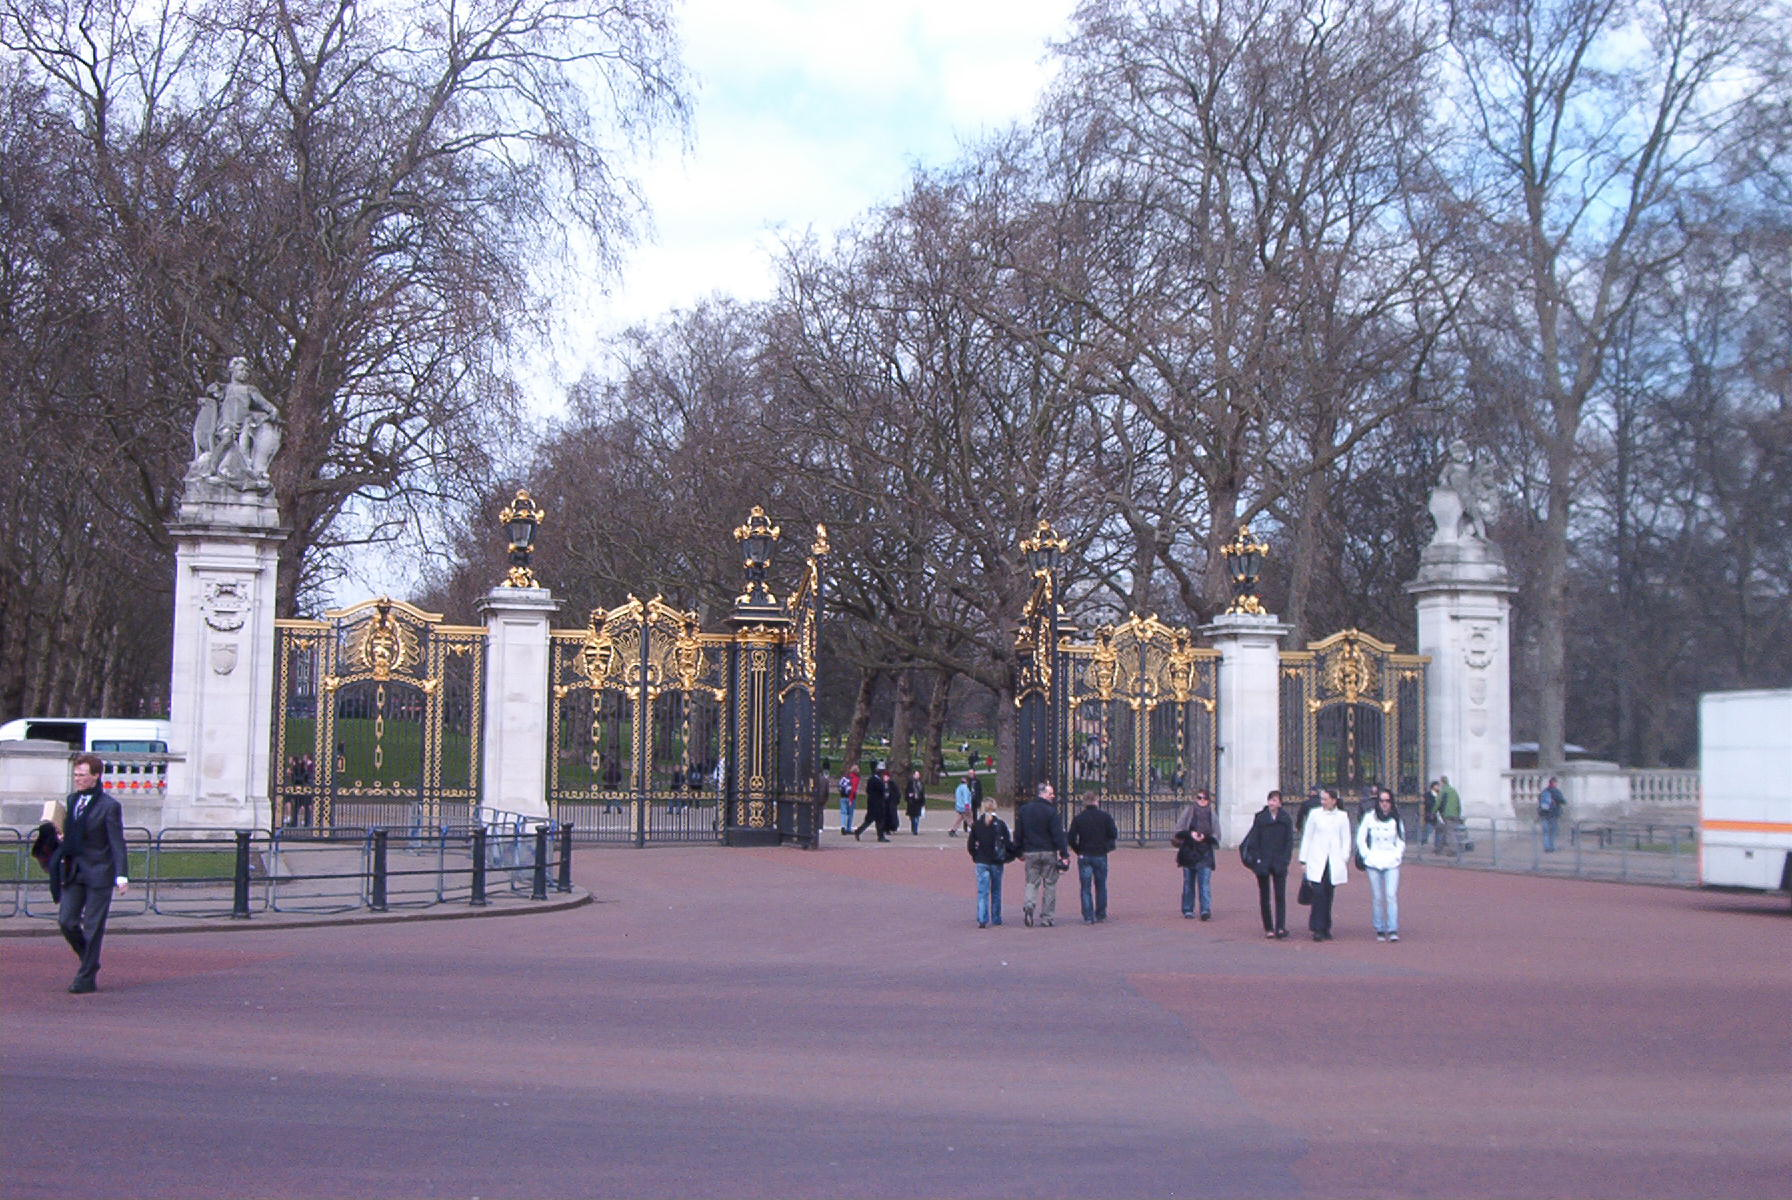 Subsidiary Gates Like This One Surround The Victoria